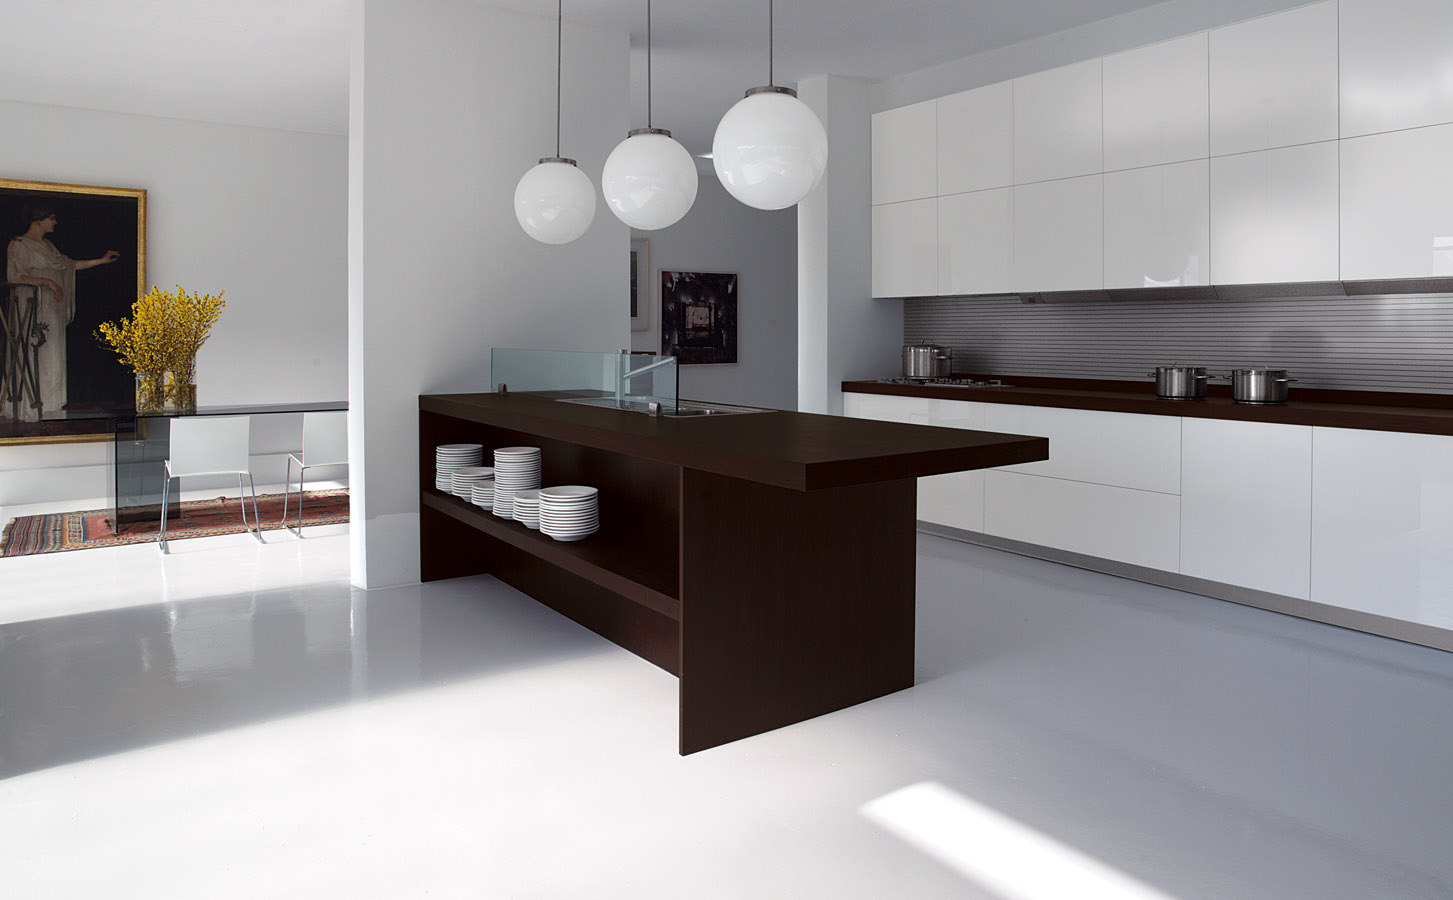 Contemporary kitchen interiors afreakatheart - Kitchen interior designing ...